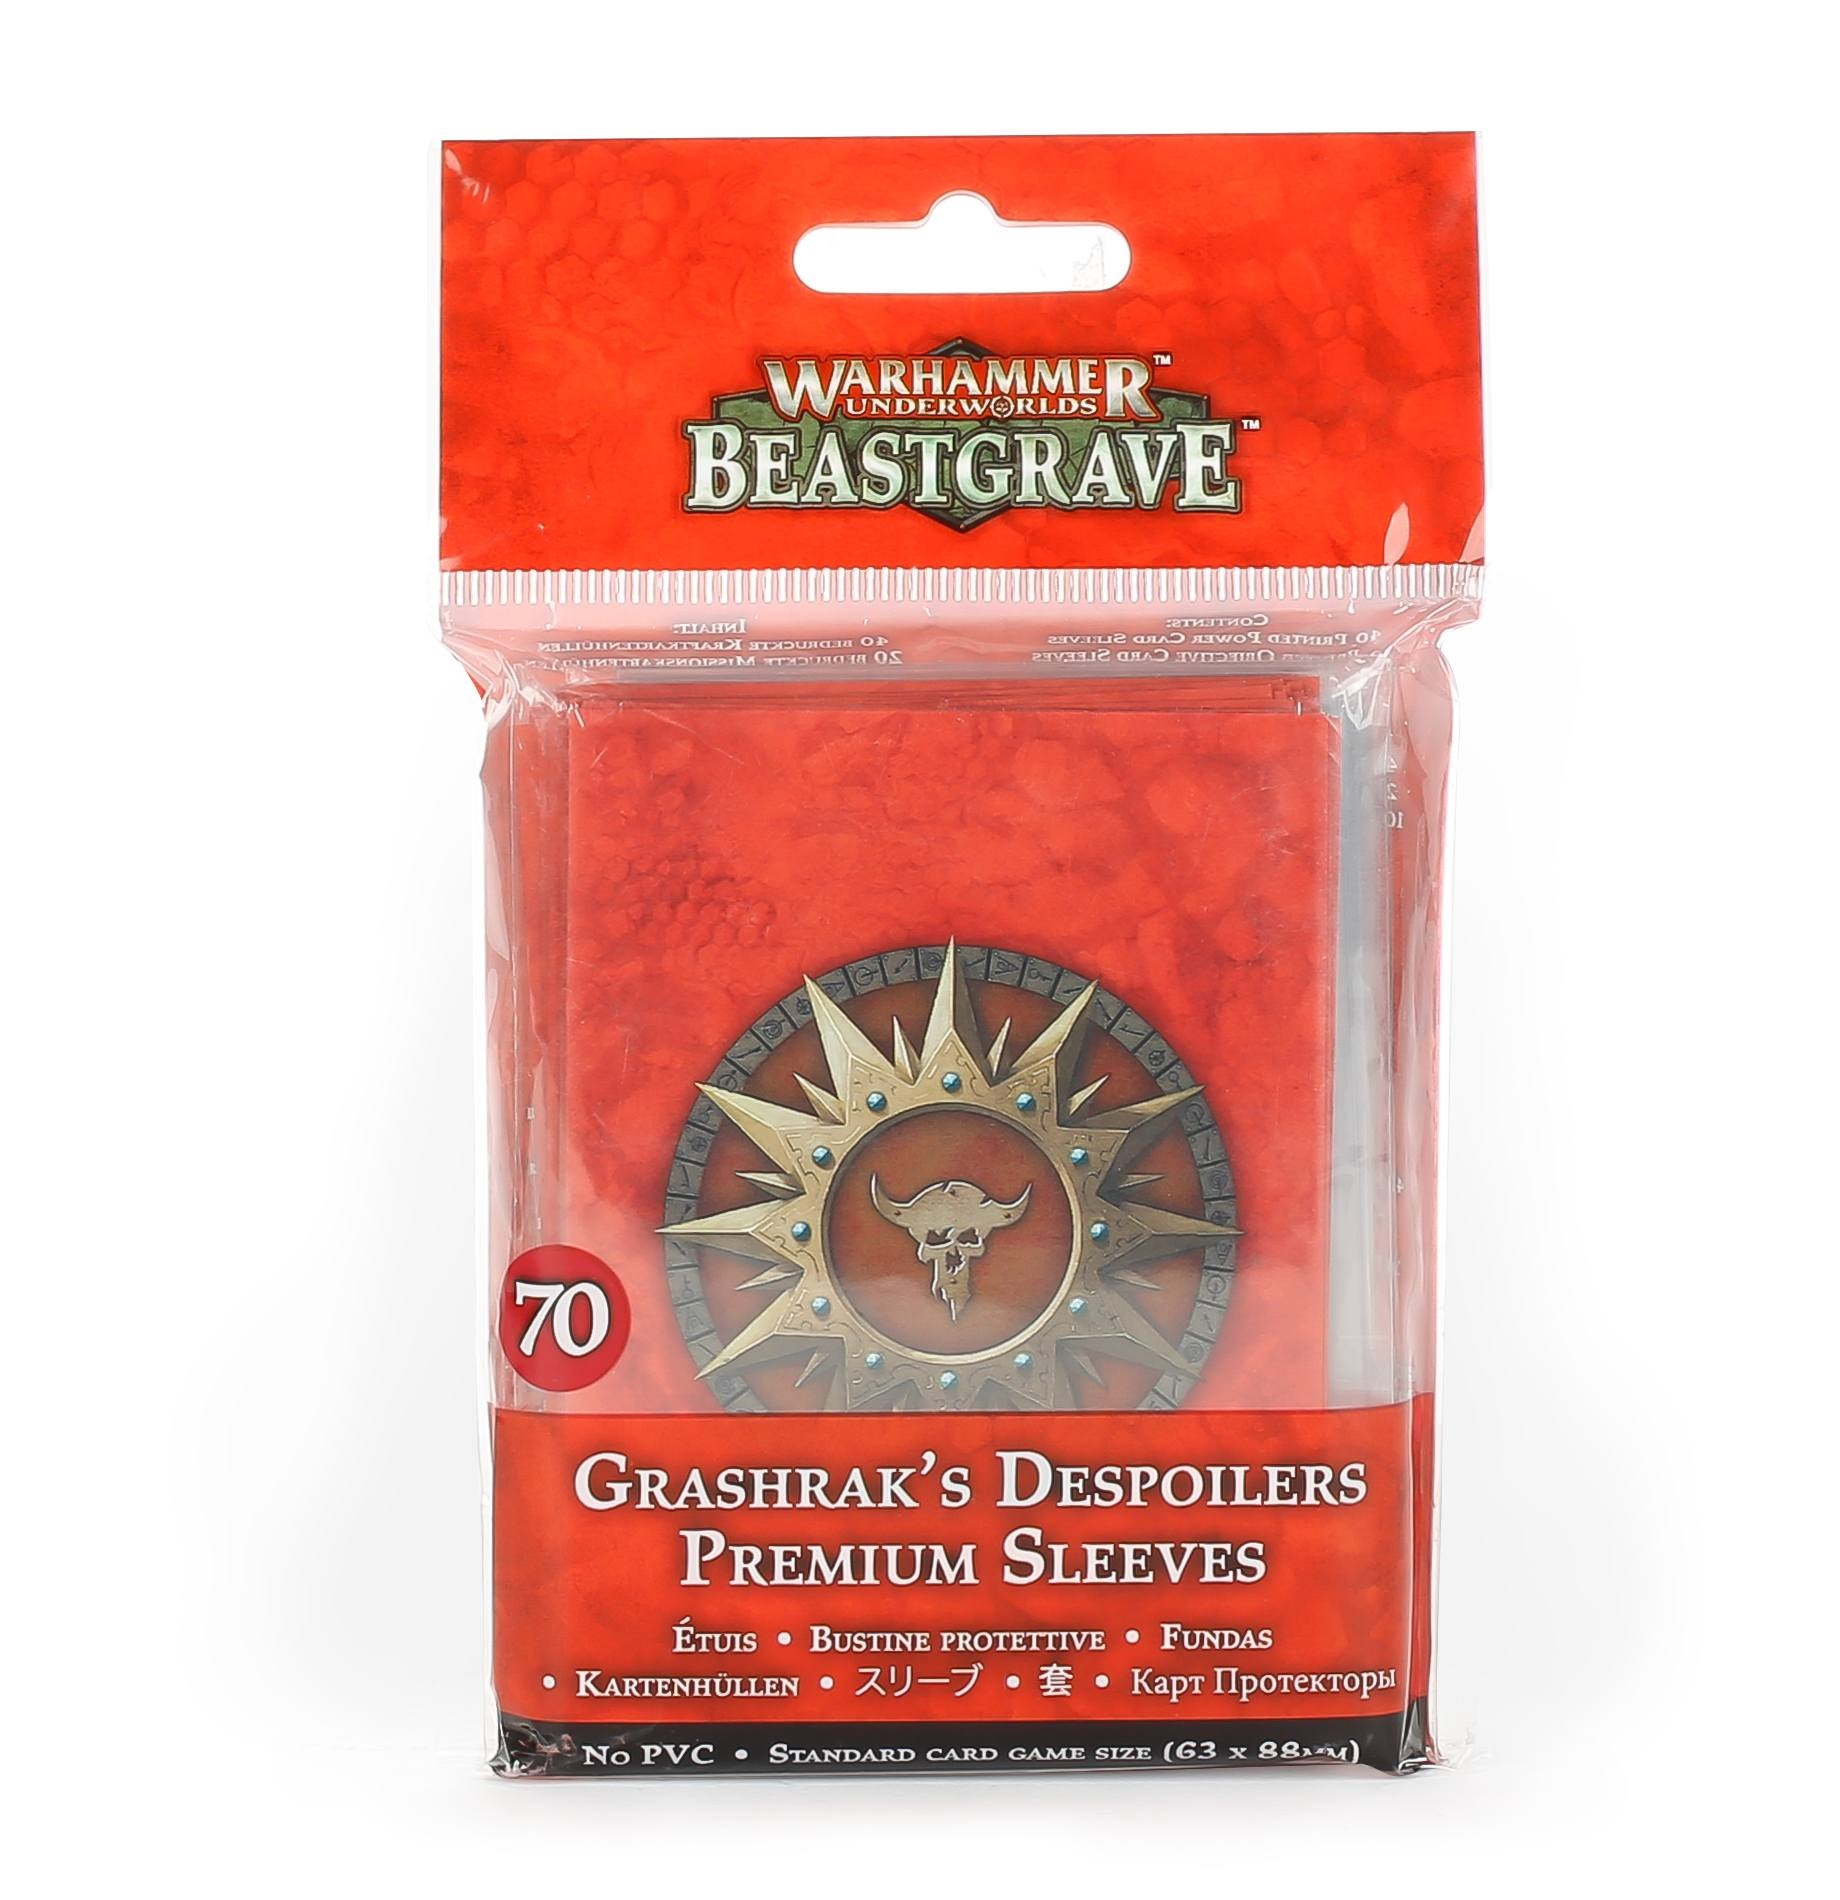 Grashraks Despoilers Sleeves Pack